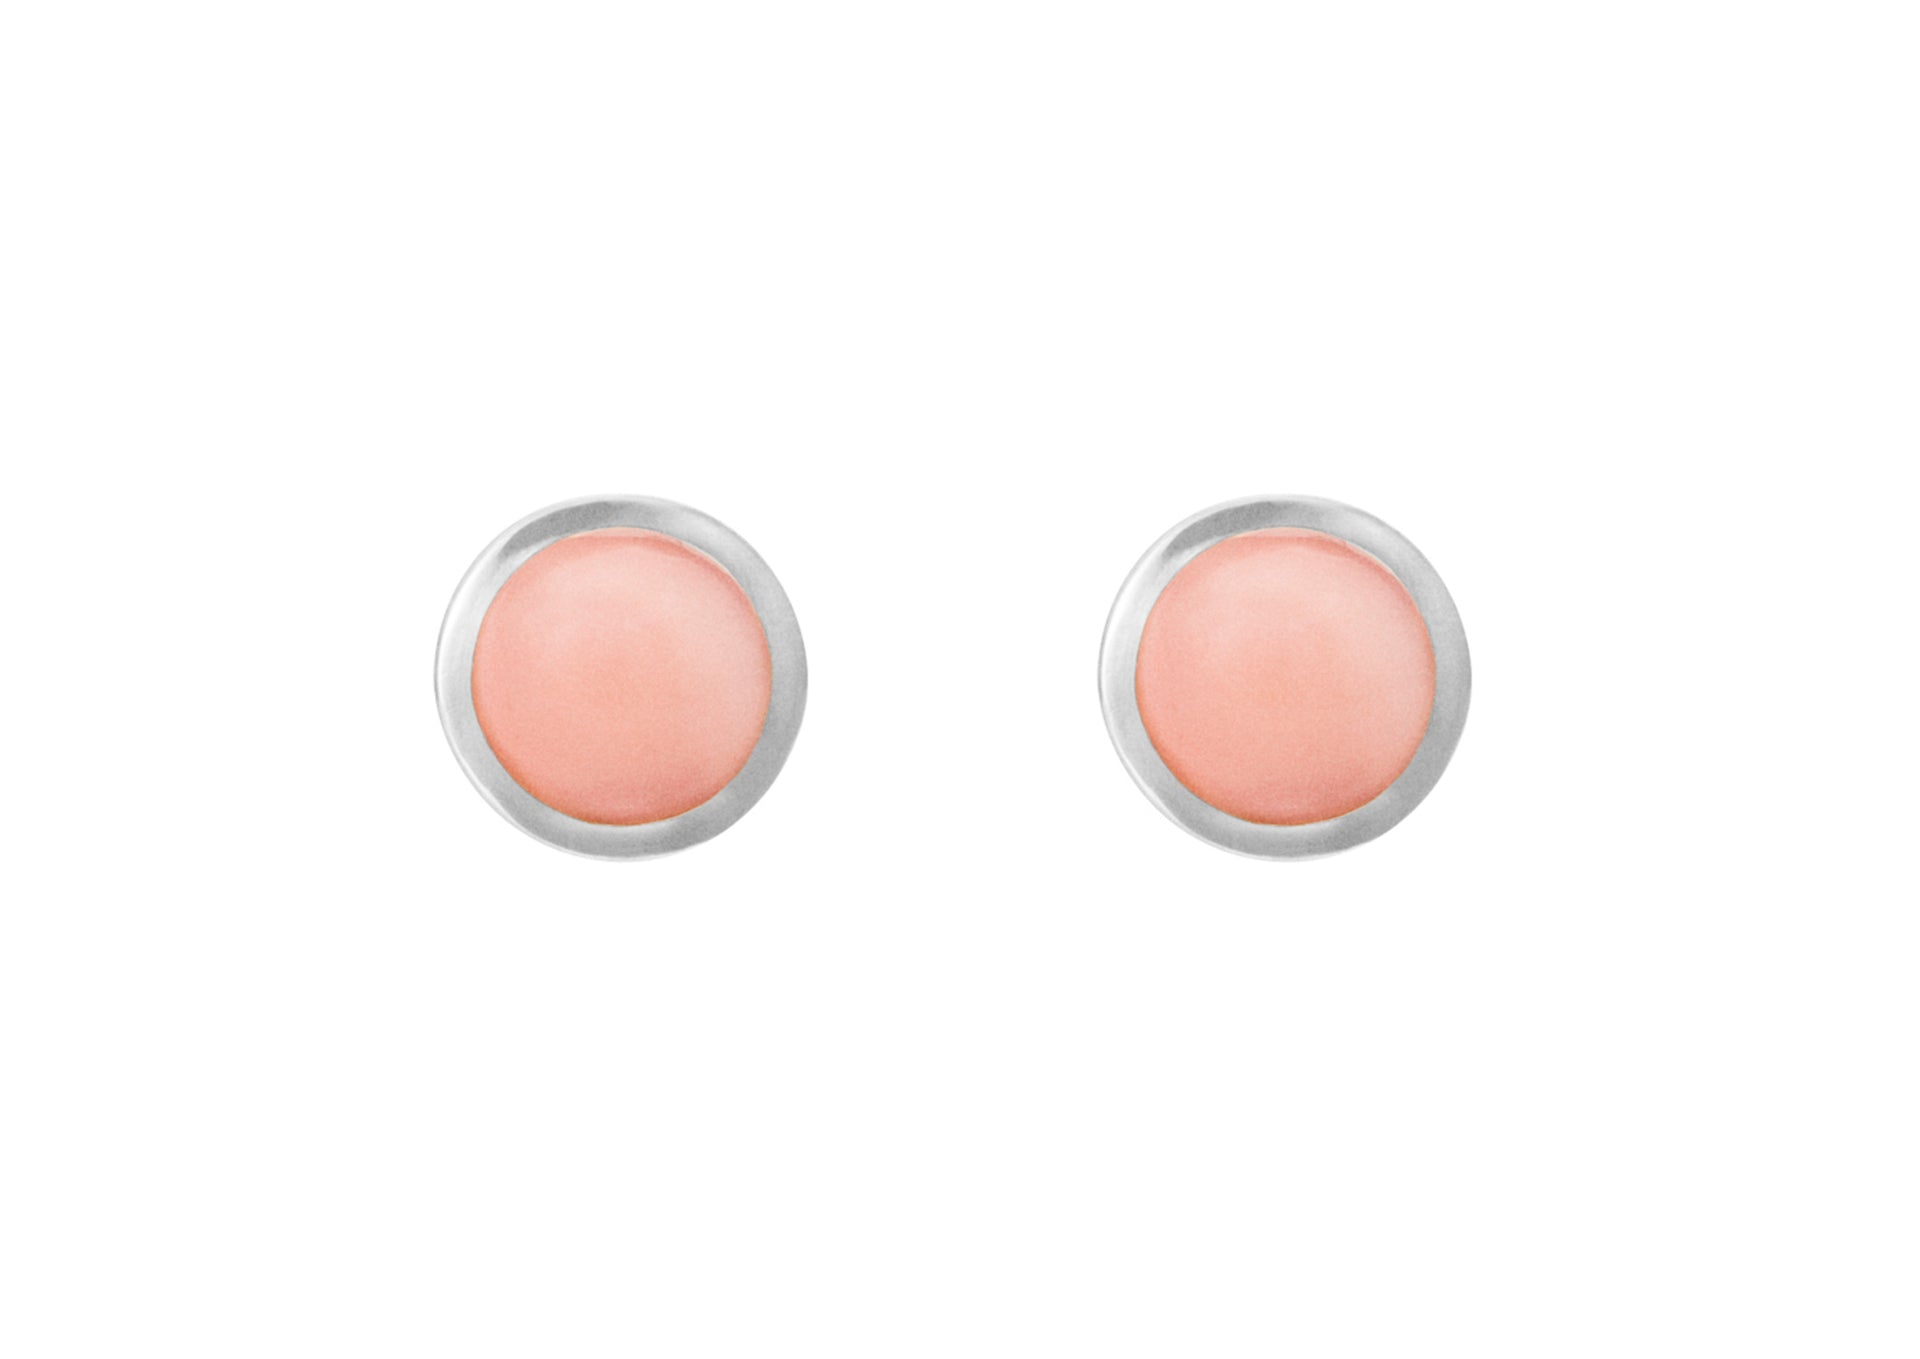 Circus earrings in Sterling silver with coral